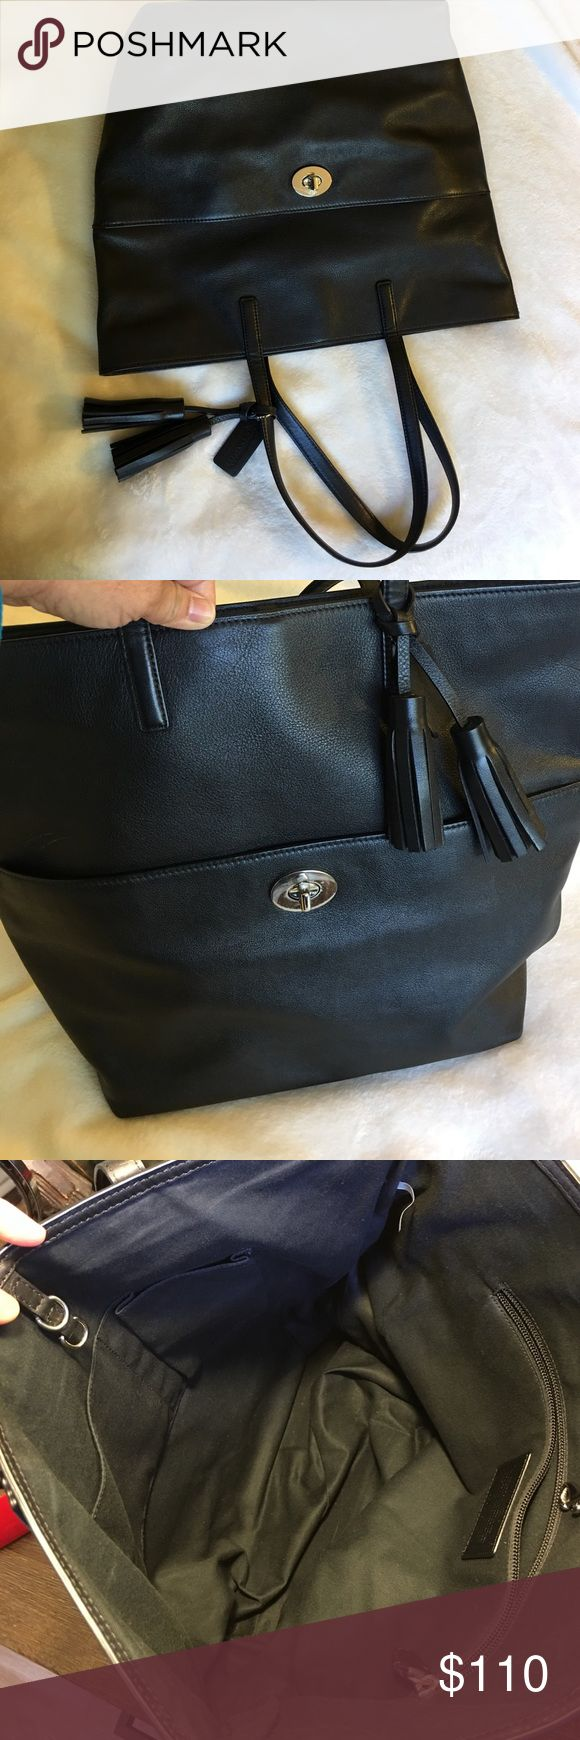 Coach Legacy Tassel Turnlock Tote, black leather Barely used Coach Legacy Tassel Turnlock tote in black leather.  Very clean, almost like new condition. Coach Bags Totes